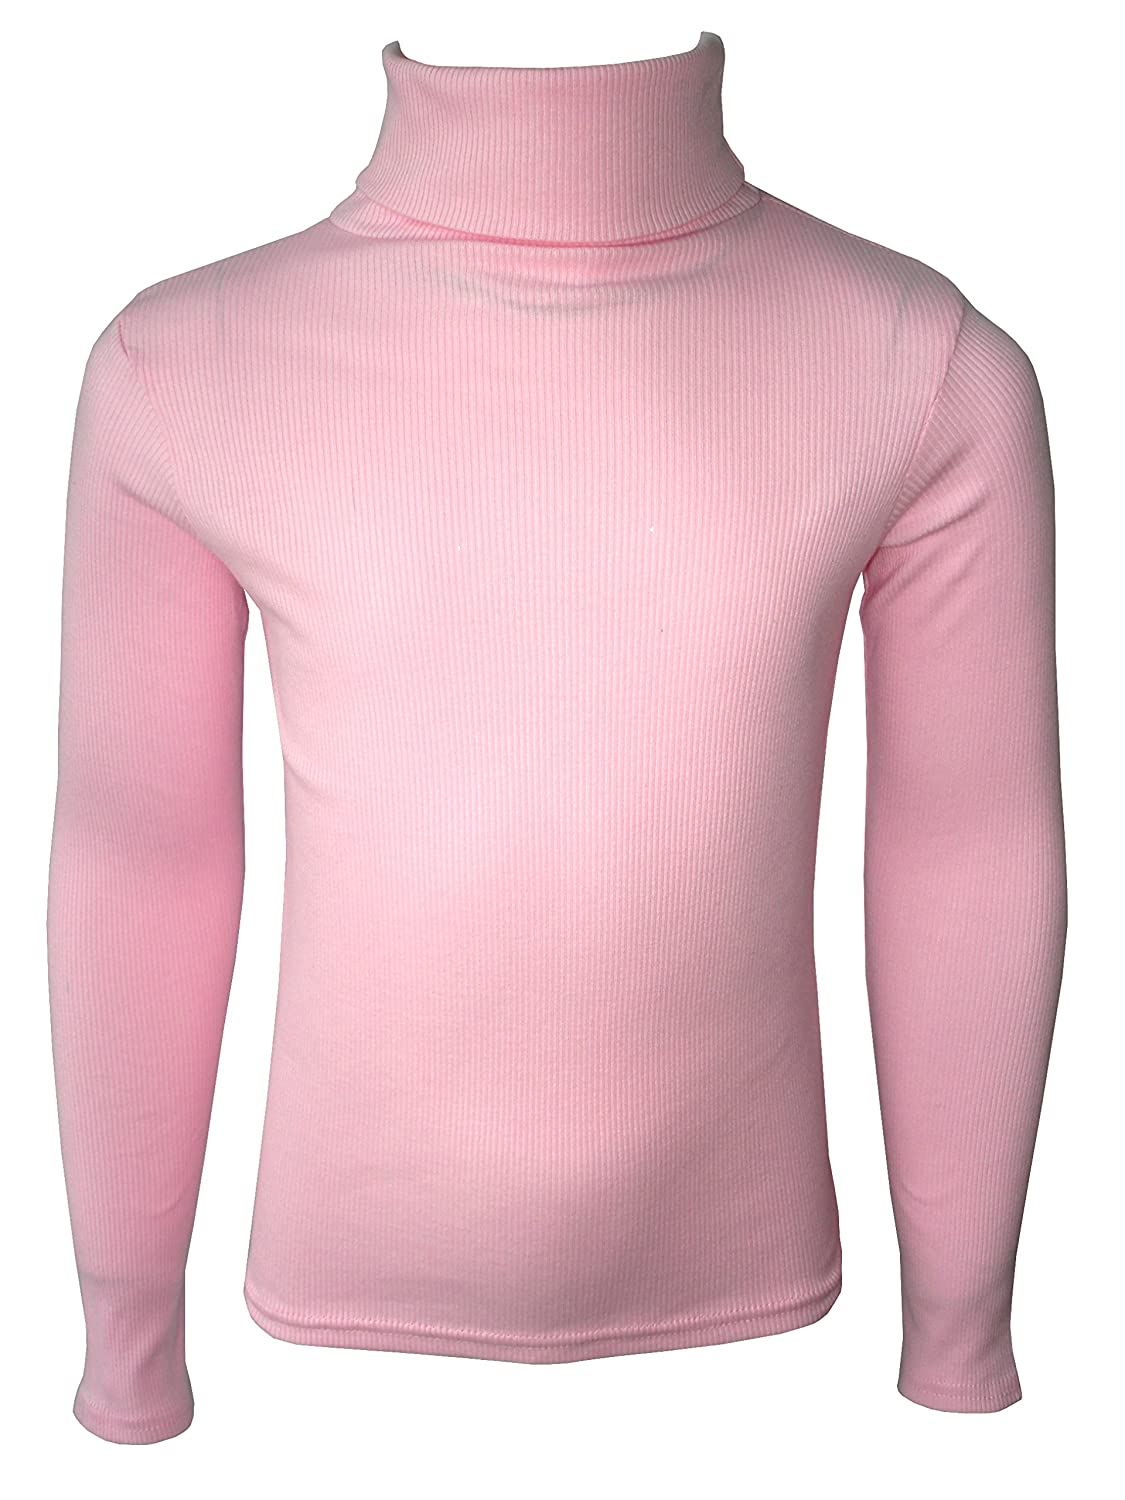 KIDS BOYS GIRLS POLO NECK RIBBED JUMPER TOP TURTLE ROLL NECK 0-13 YEARS NEW